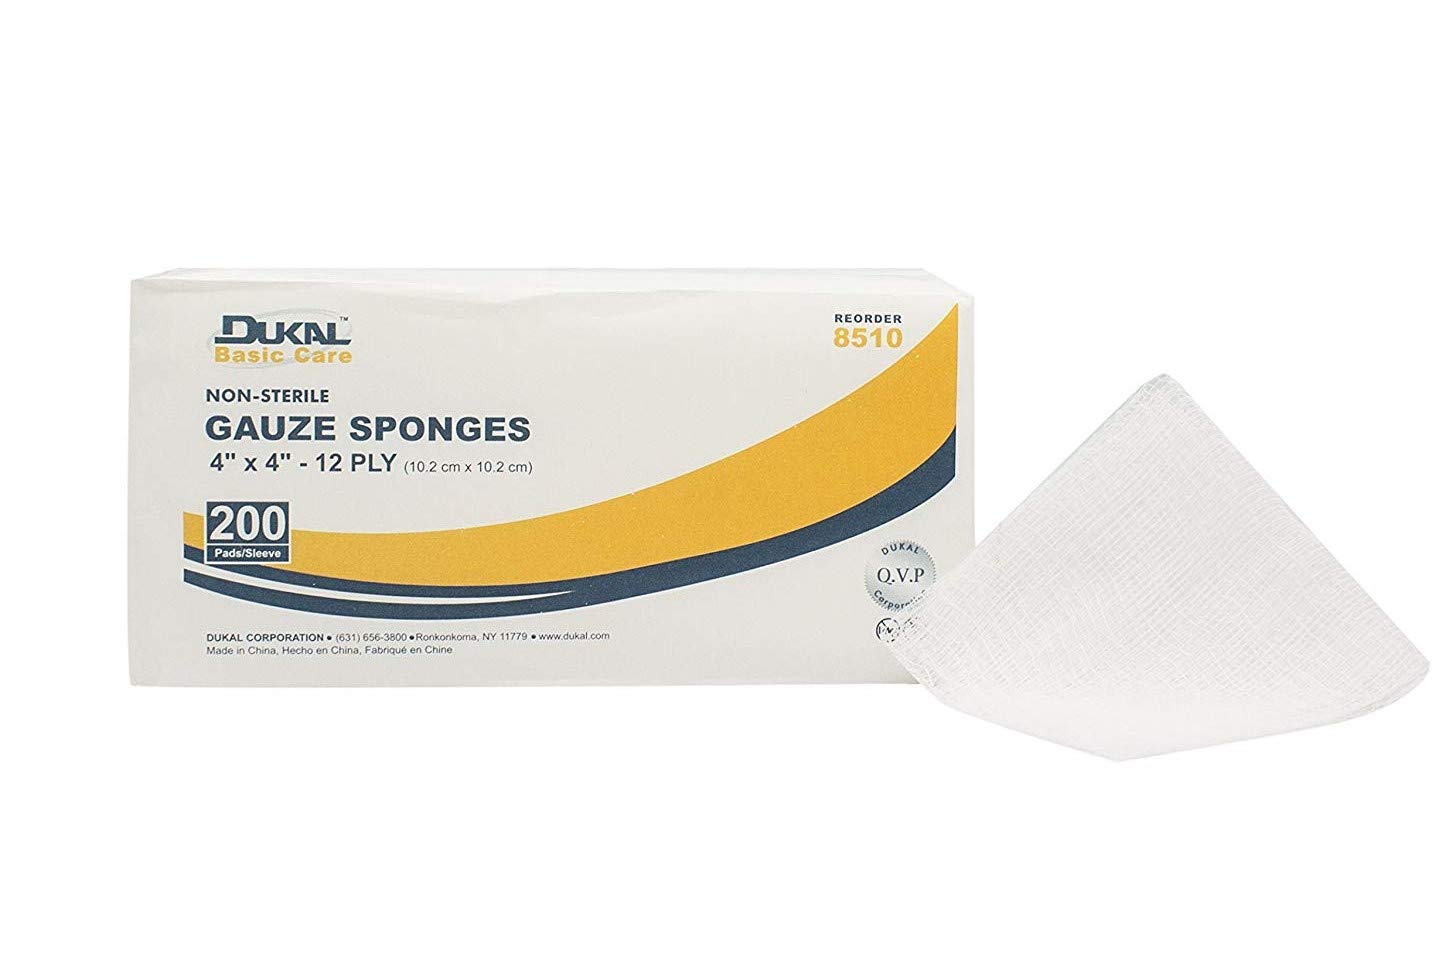 Dukal 8510 Gauze Sponge, Basic, 12-Ply, Non Sterile, 4'' x 4'' (Pack of 2000) by Dukal